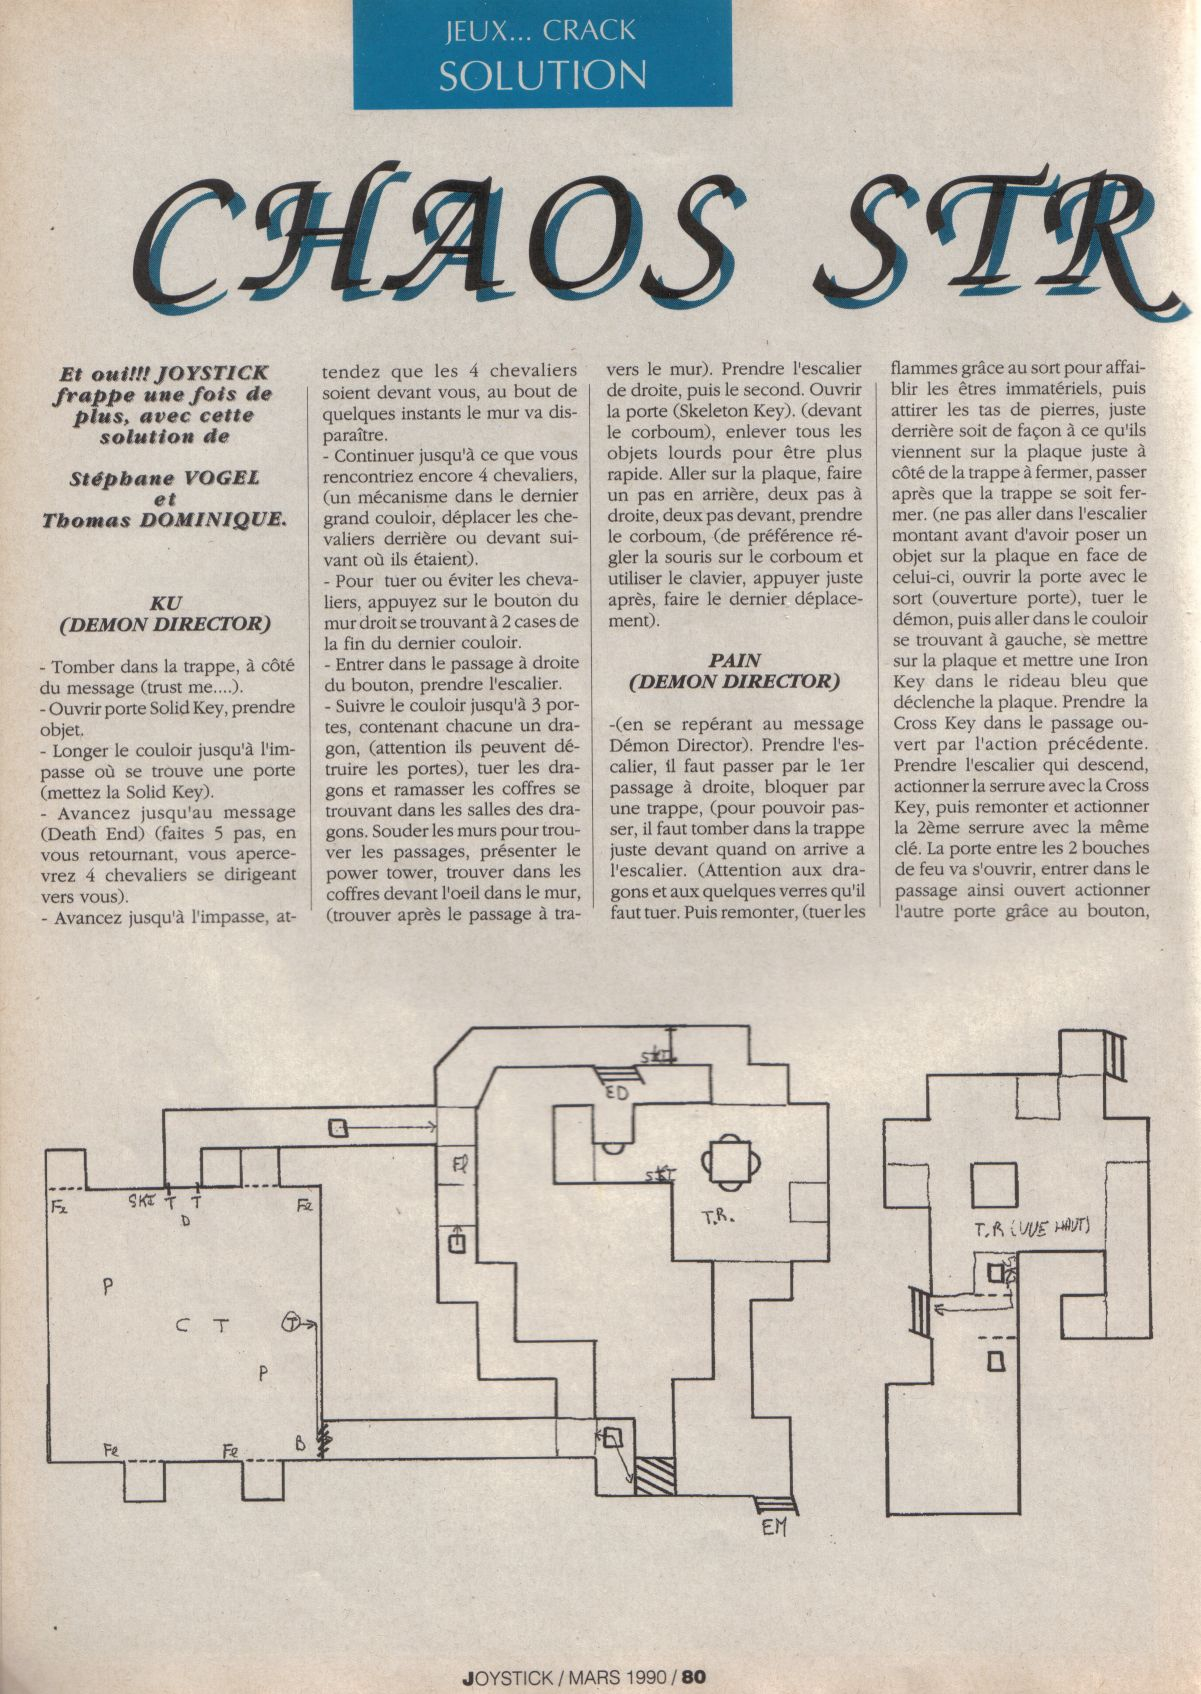 Chaos Strikes Back for Atari ST Guide published in French magazine 'Joystick', Issue #3, March 1990, Page 80